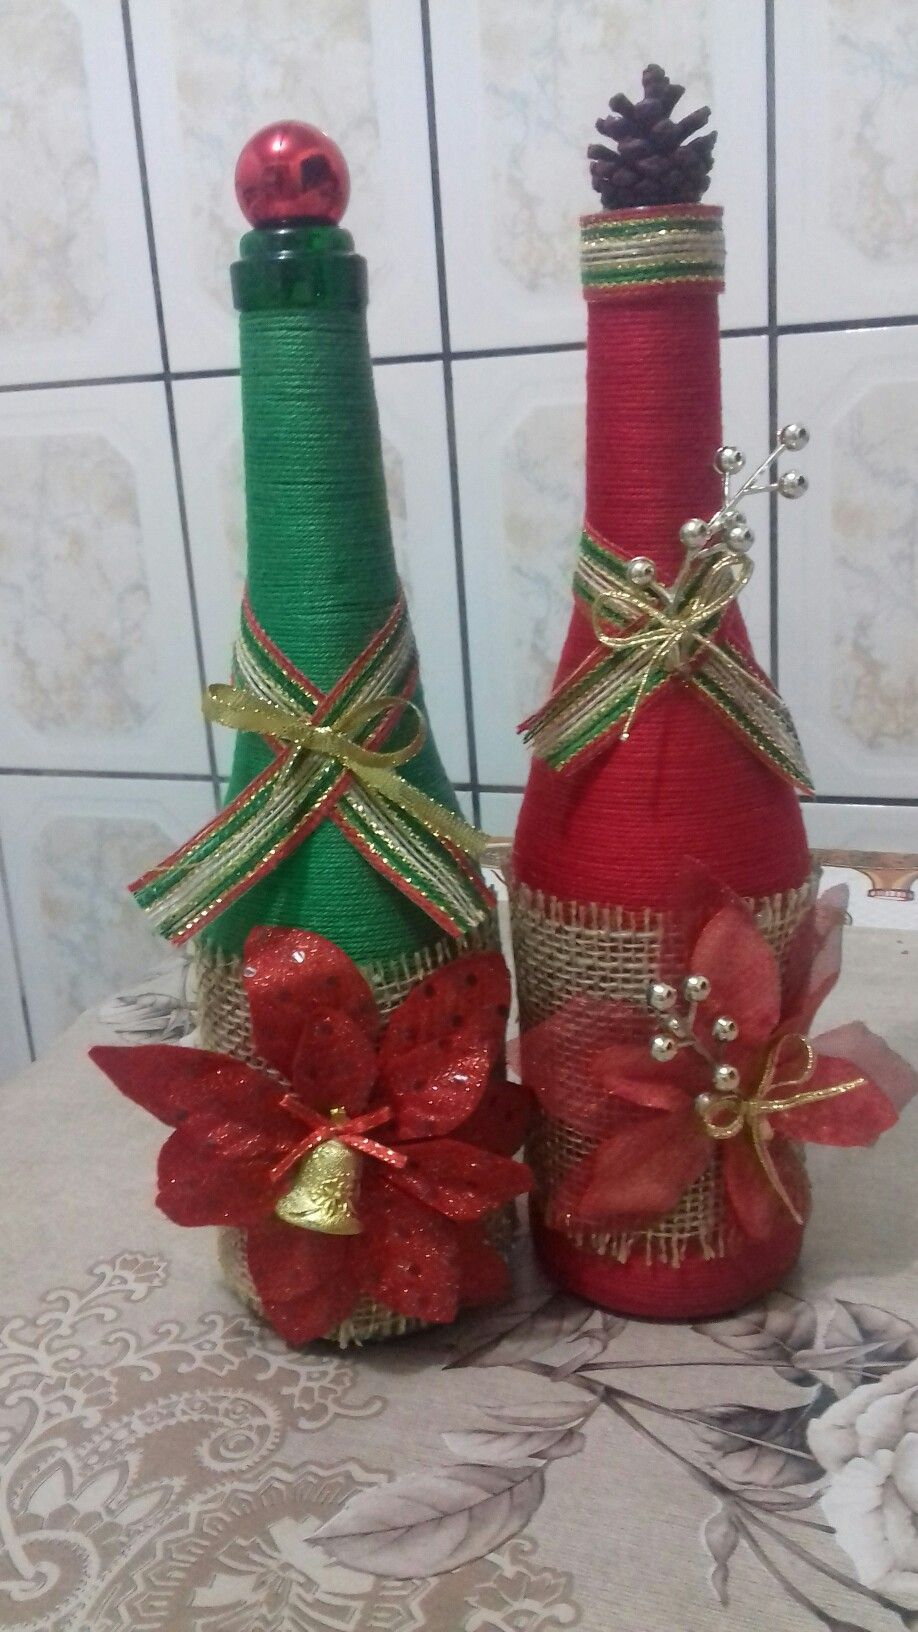 Pin de lidys lu fuentes rocha en botellas decoradas for Botellas de vidrio decoradas para navidad